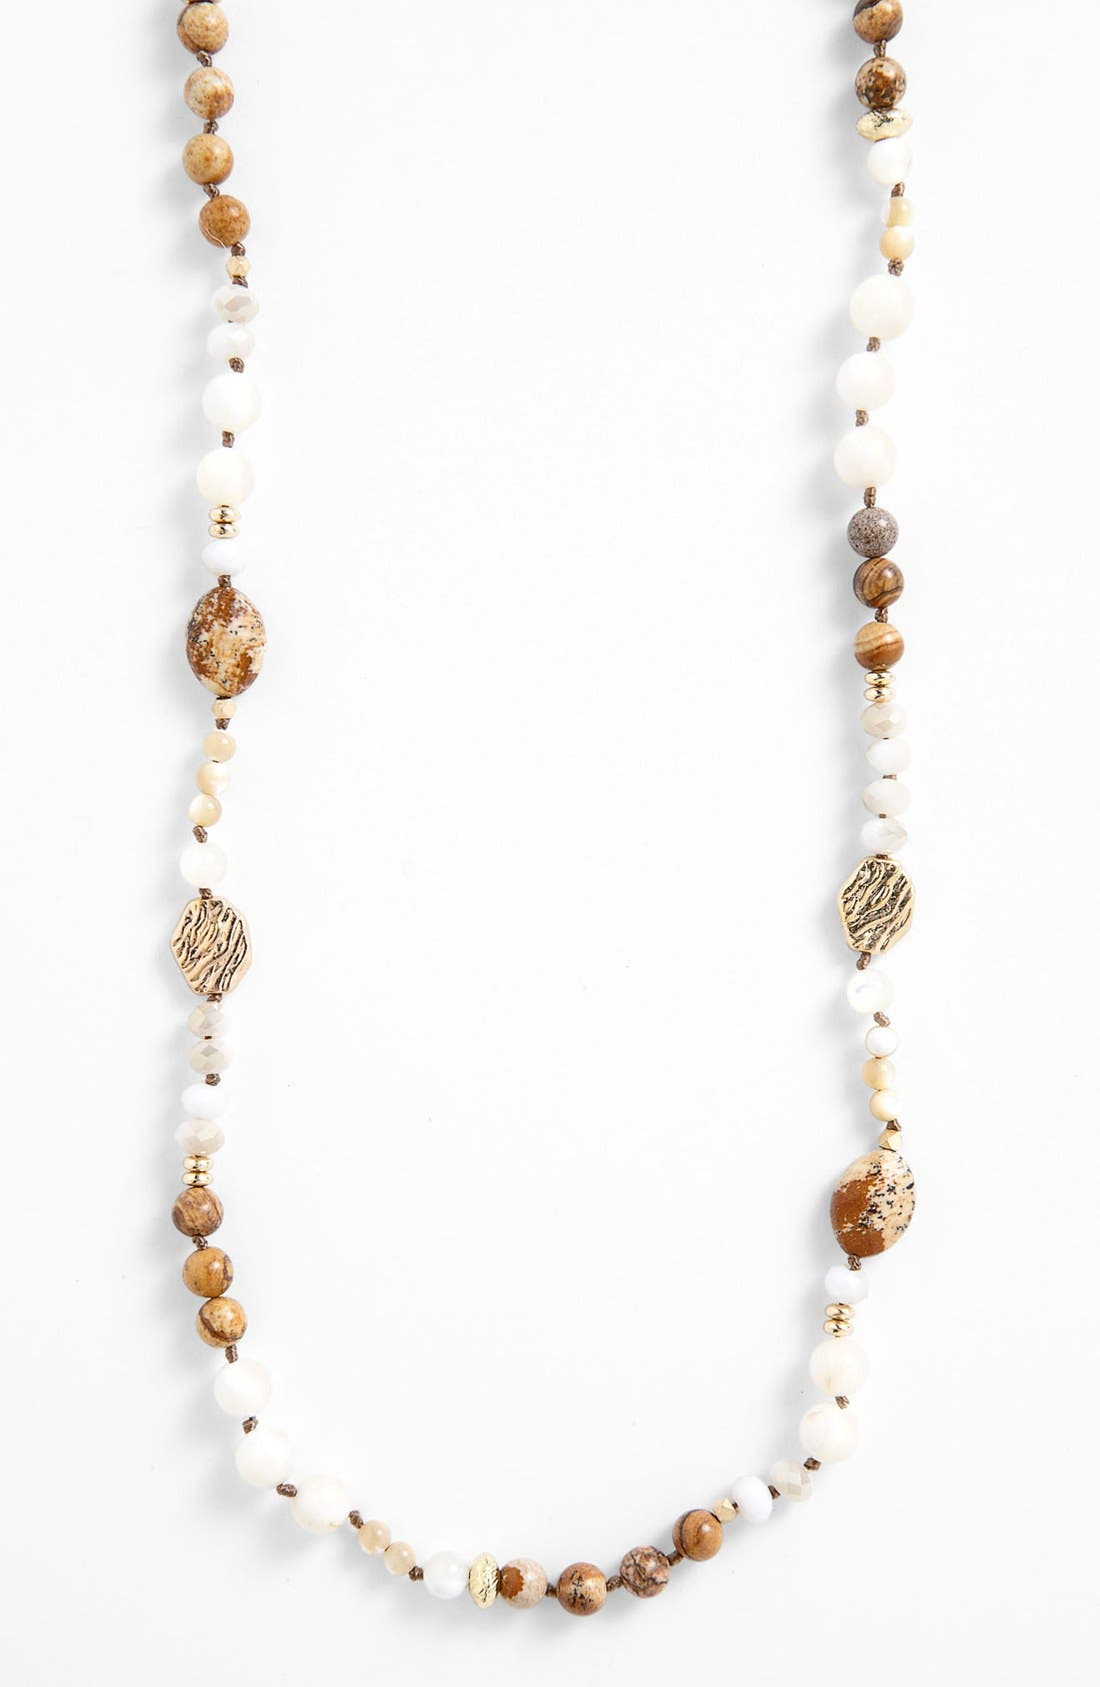 Main Image - Nordstrom 'Pebbles' Long Beaded Necklace